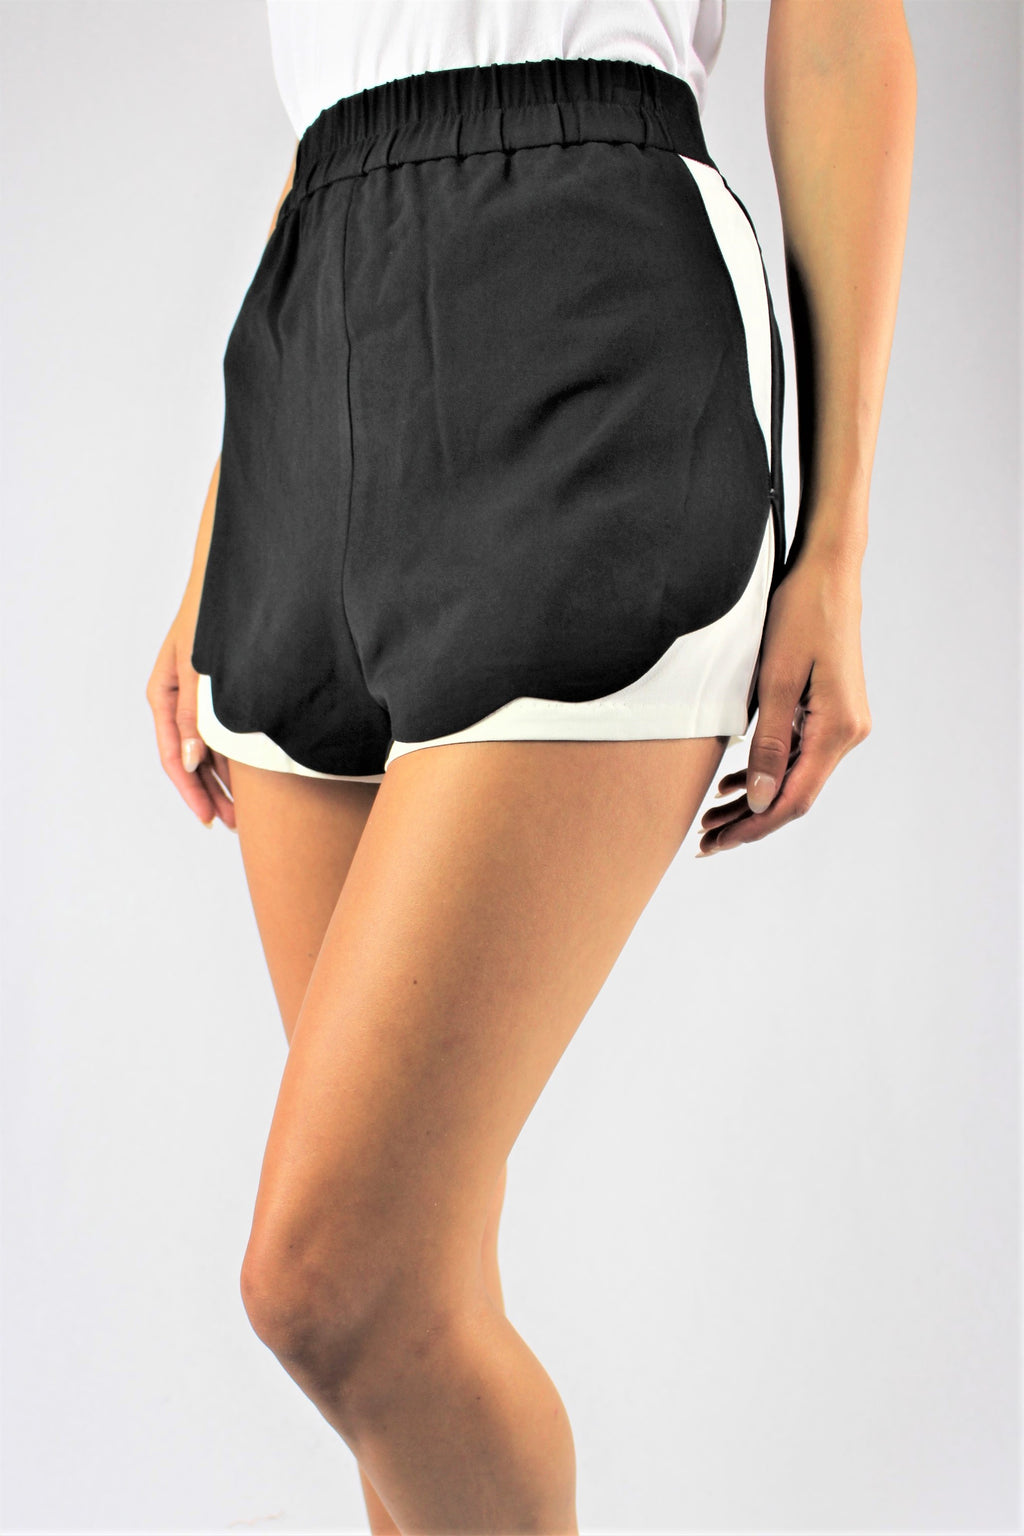 Women's Stylish Shorts